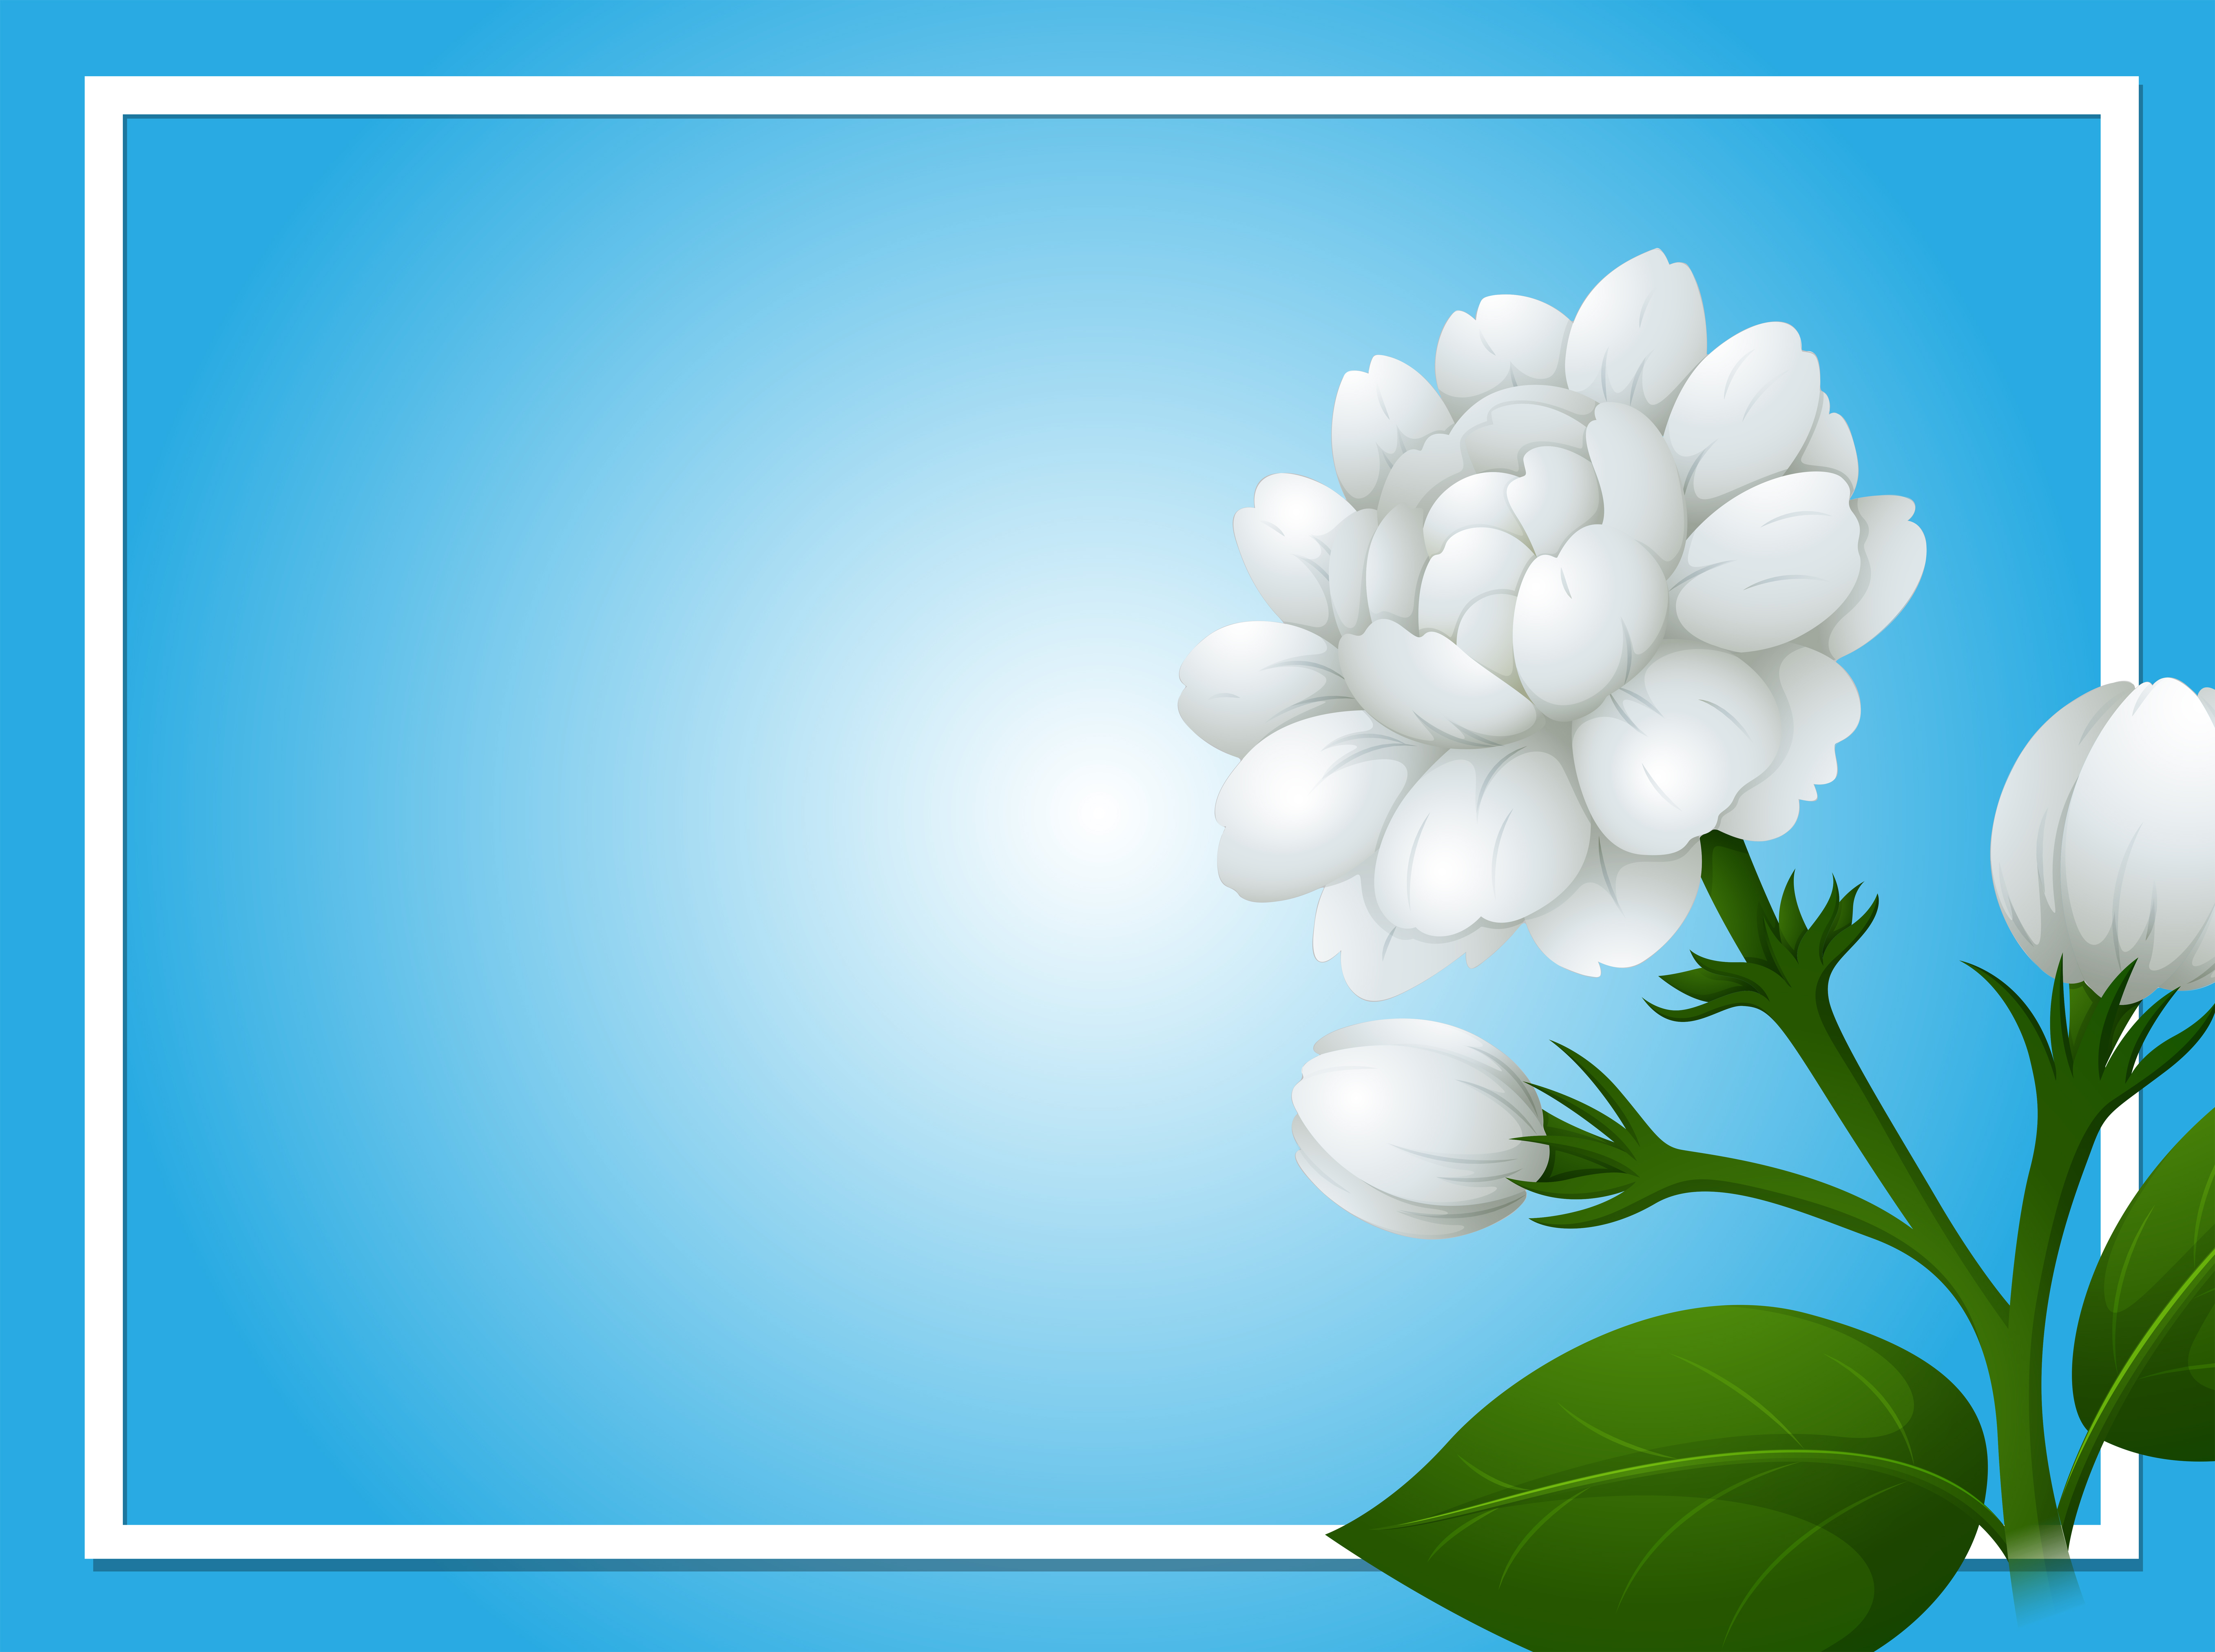 Free Jasmine Flower Clipart in AI, SVG, EPS or PSD